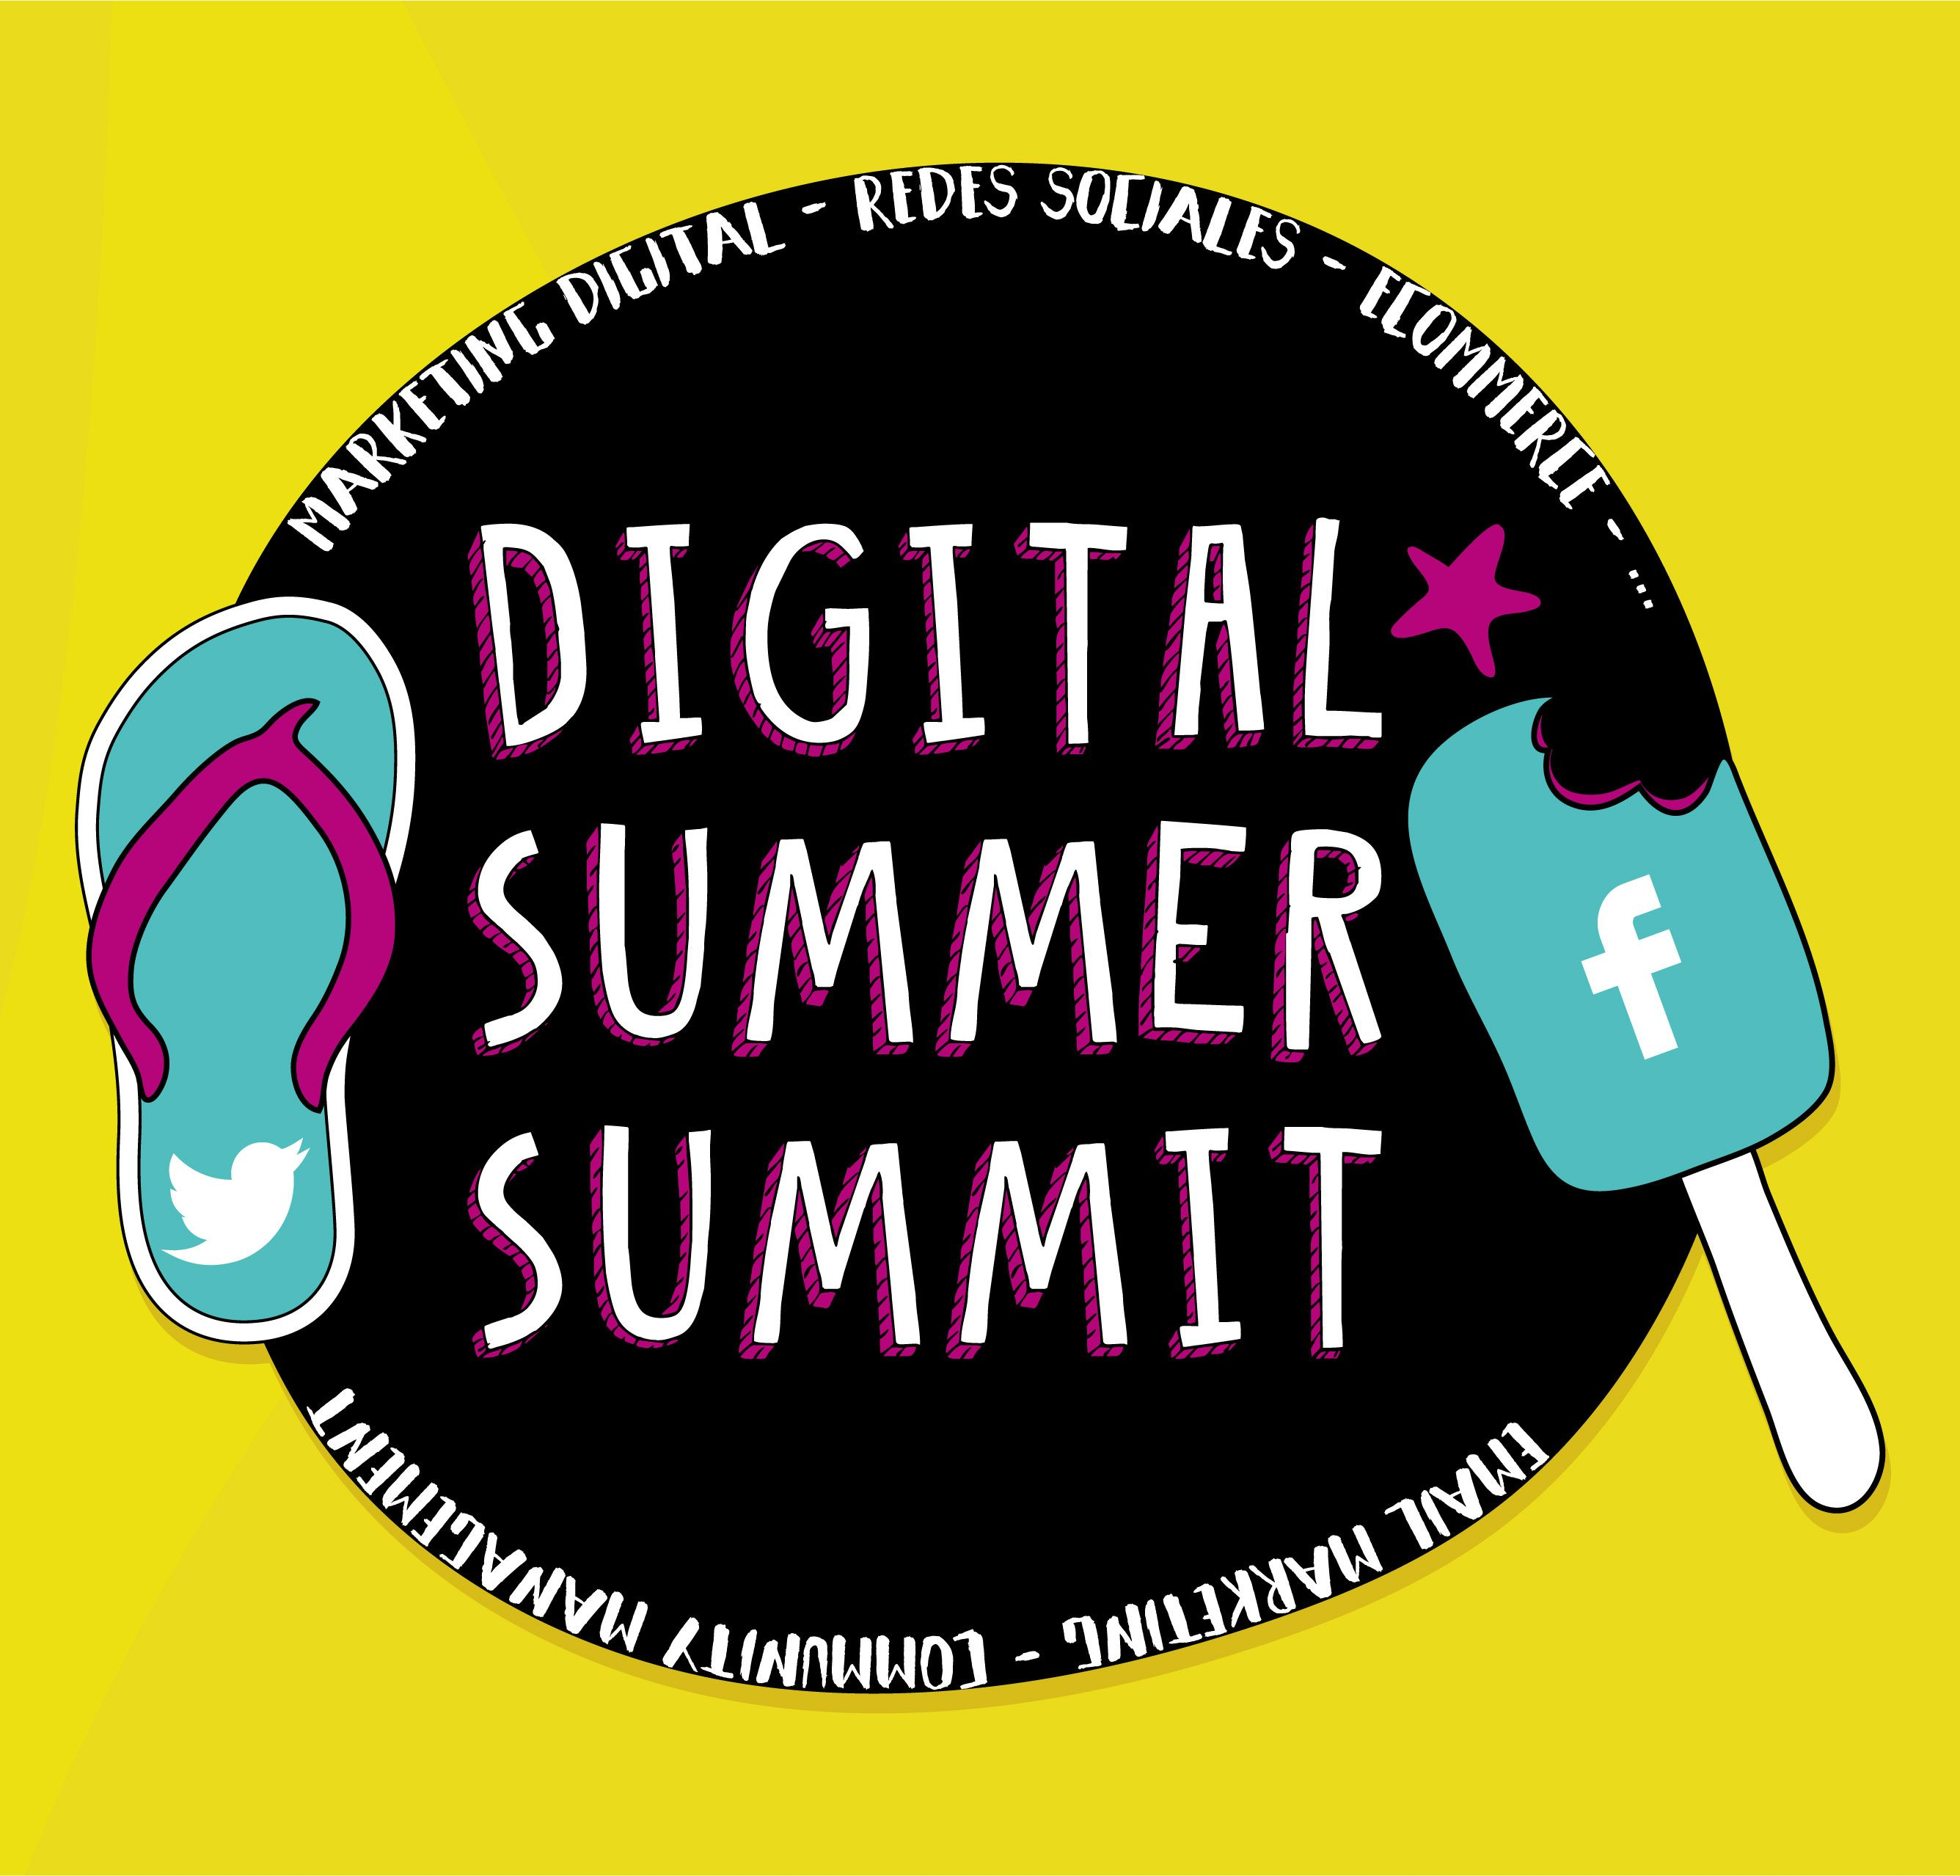 Digital Summer Summit, congreso de verano de Internet